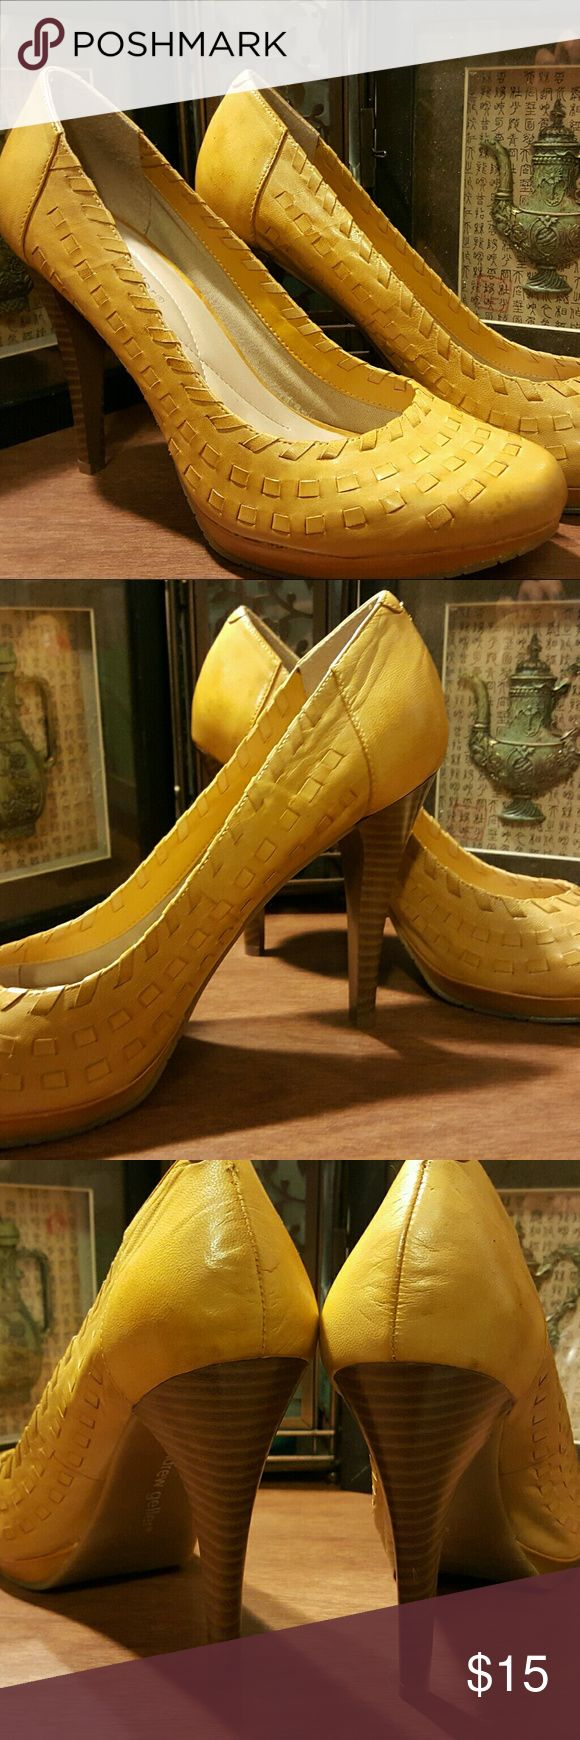 Andrew Geller basket weave Pumps Mustard basket weave Pumps, never worn, slight discolorations (see pics), marked on the sole of the shoe and inside shoe. price reflects condition. These were a well meaning gift but not to my tastes so my loss is your gain. Andrew Geller Shoes Heels